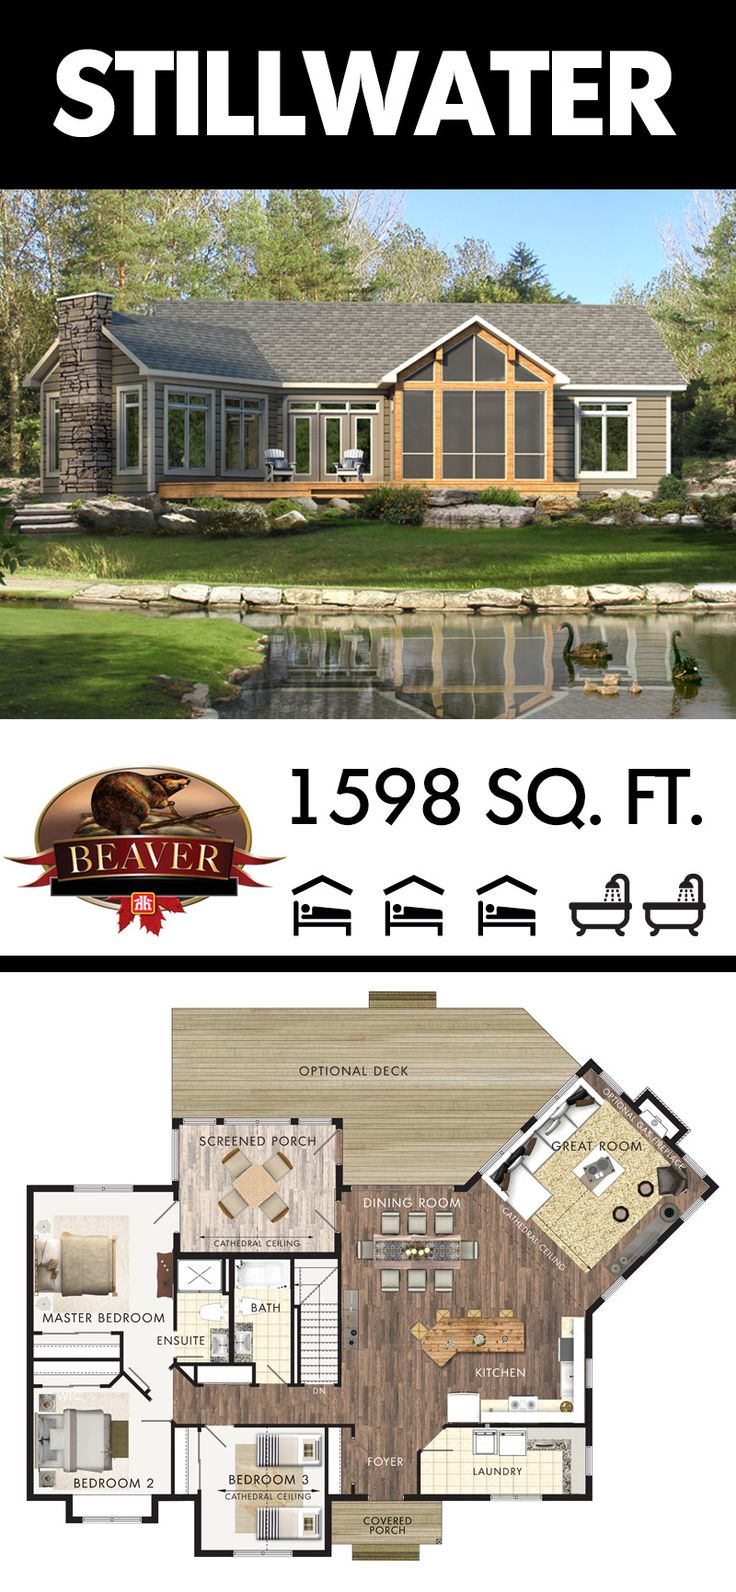 78 Images About House Plans On Pinterest French Country